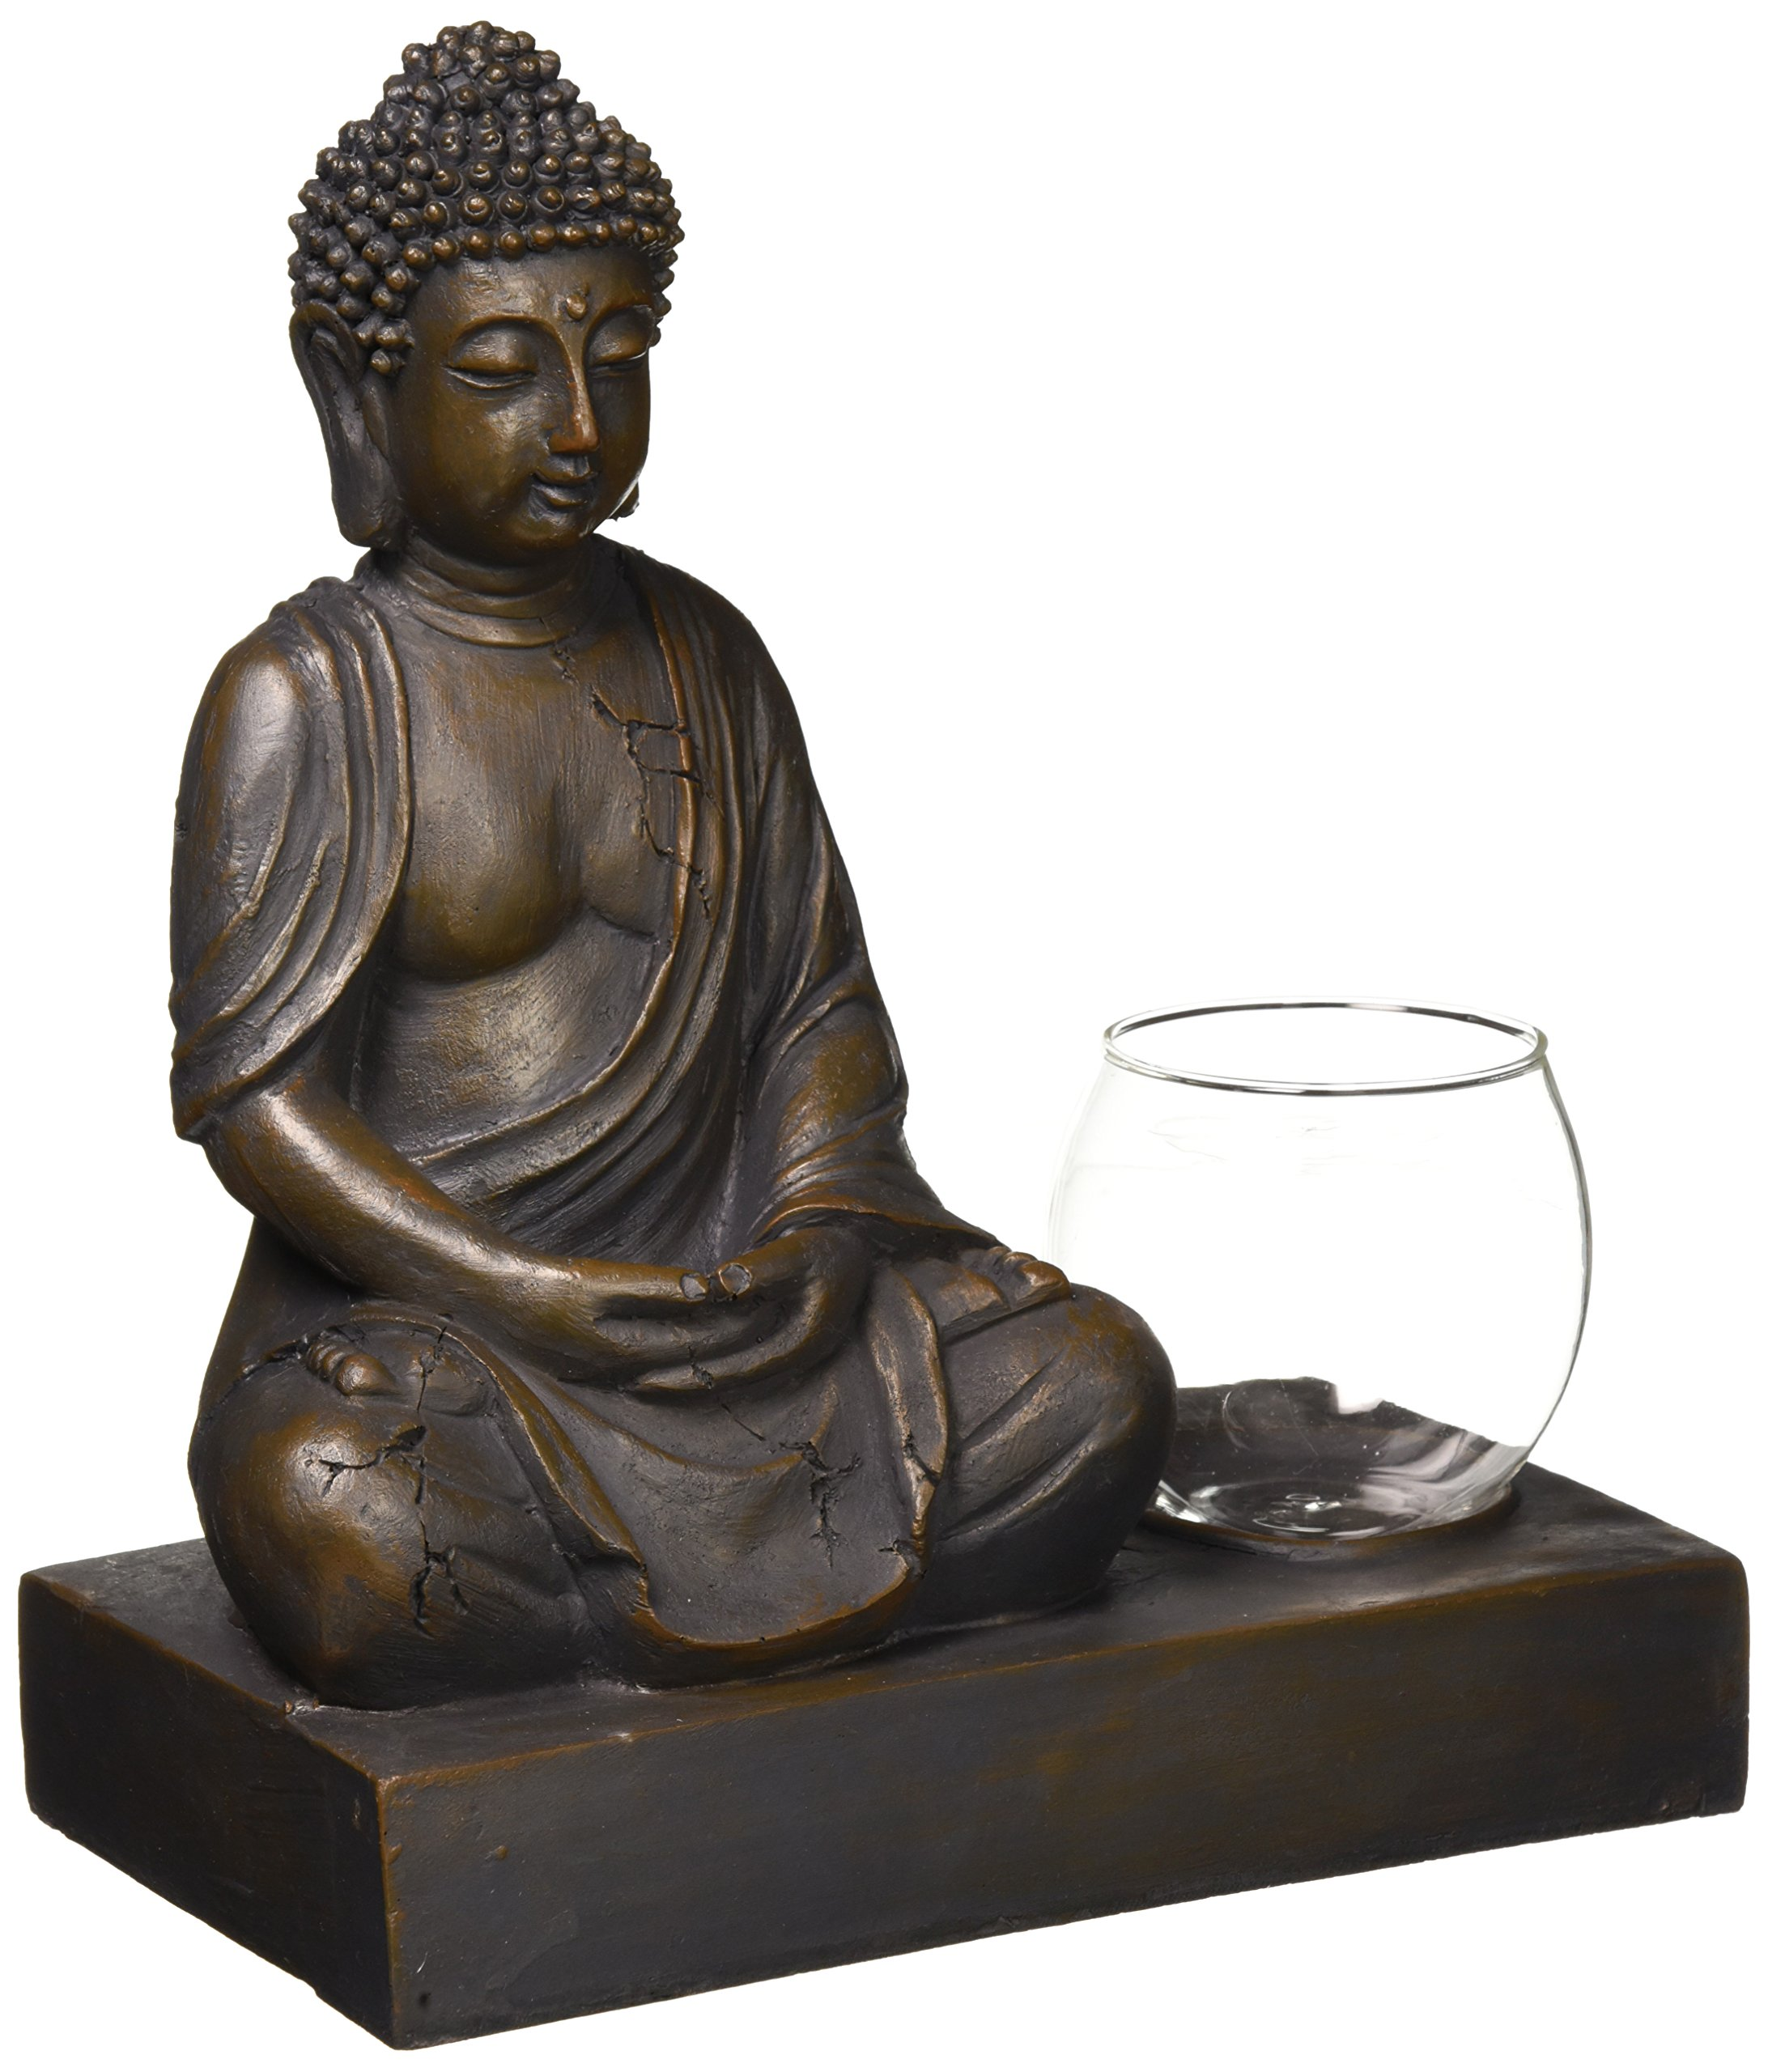 Whole House Worlds The Seated Buddha with Glass Globe Tealight Holder, Glass and Polyresin, 9 7/8 Inches High, (25cm H) From the Serenity Collection, By